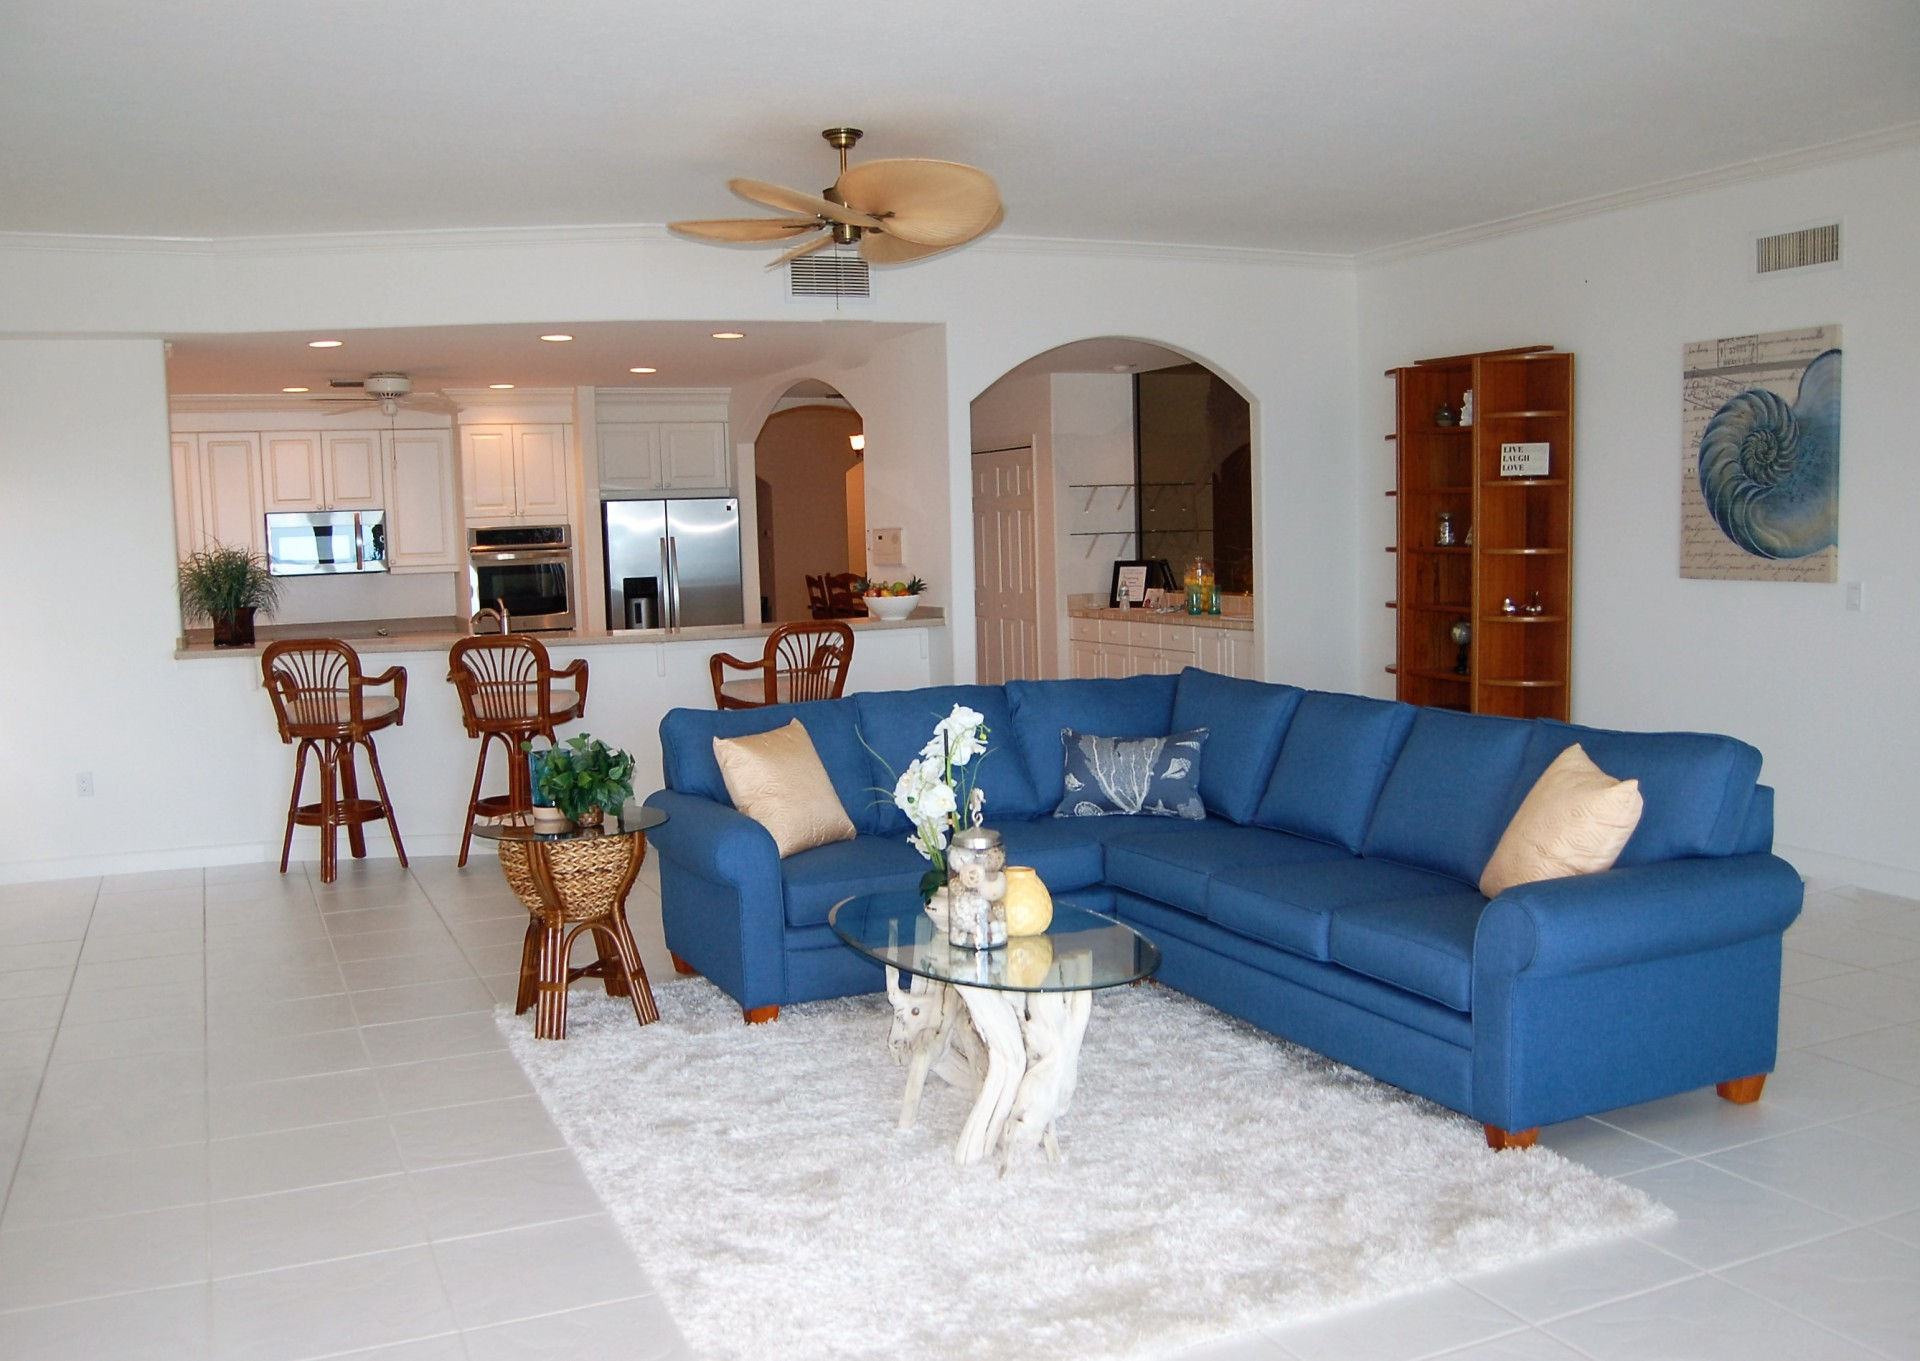 Penthouse Condo, Indialantic, Florida, Home Staging, Vacant Home Staging, Ocean front Condo, Beachside Condo, Beachside Home Staging